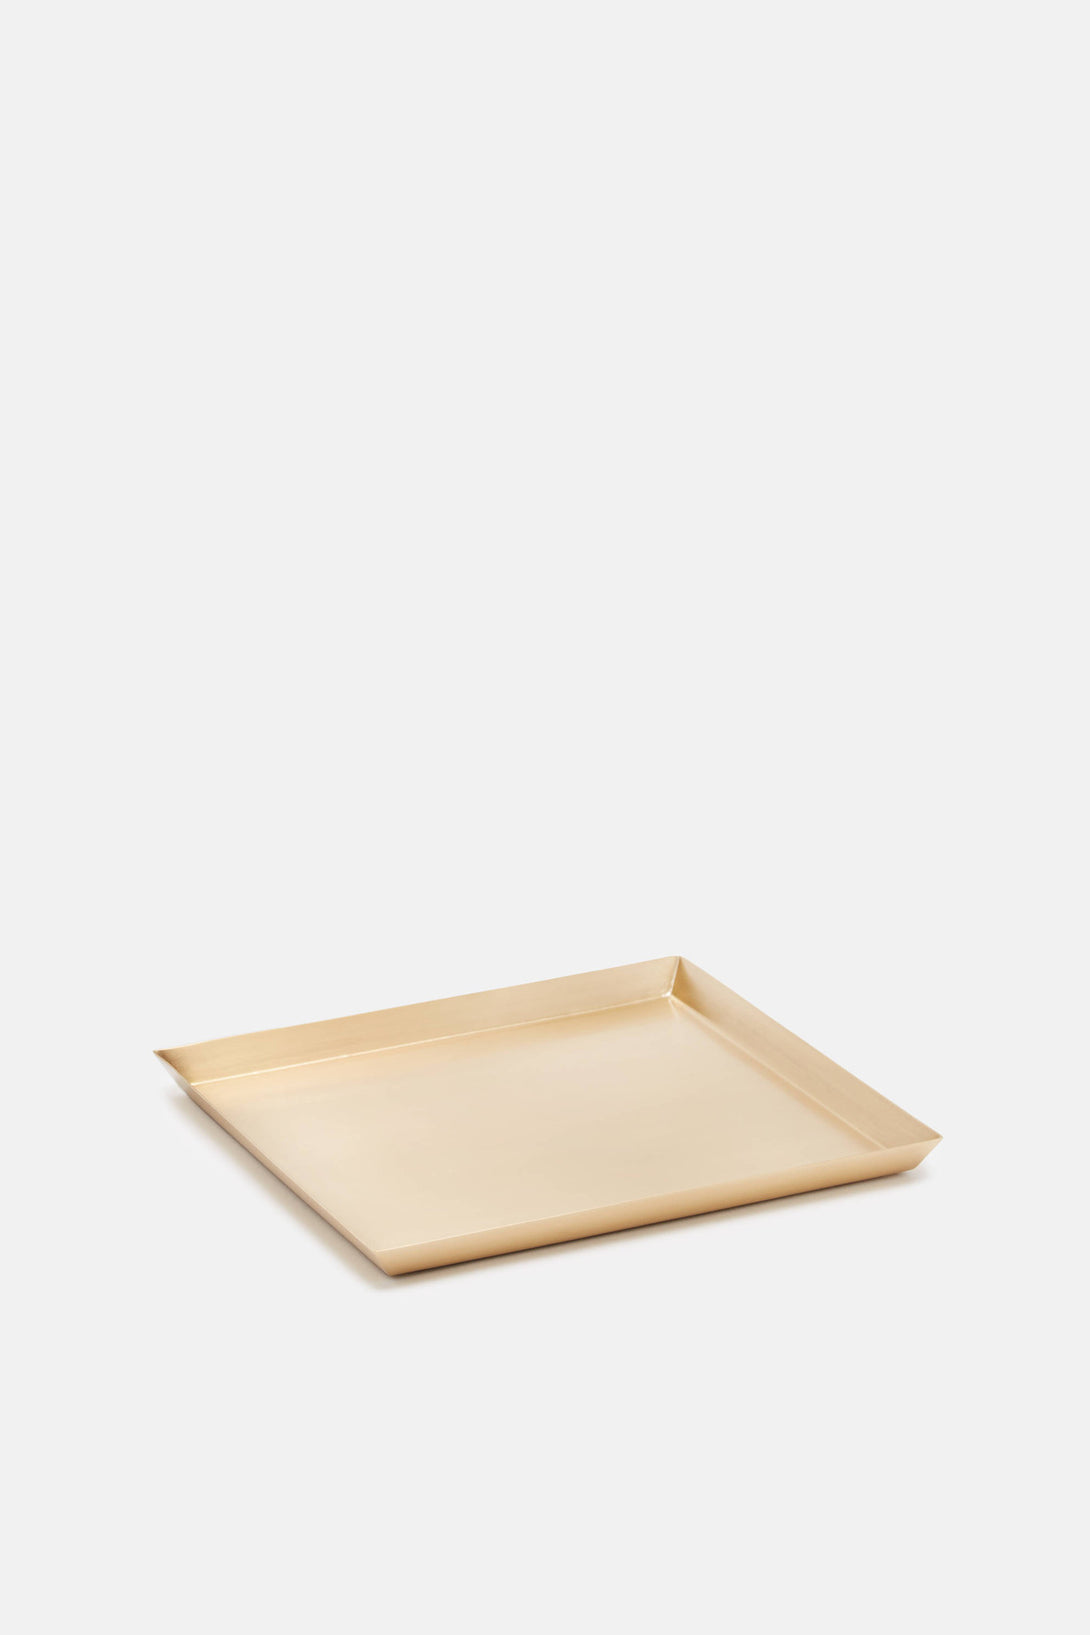 Brass Tray - Square